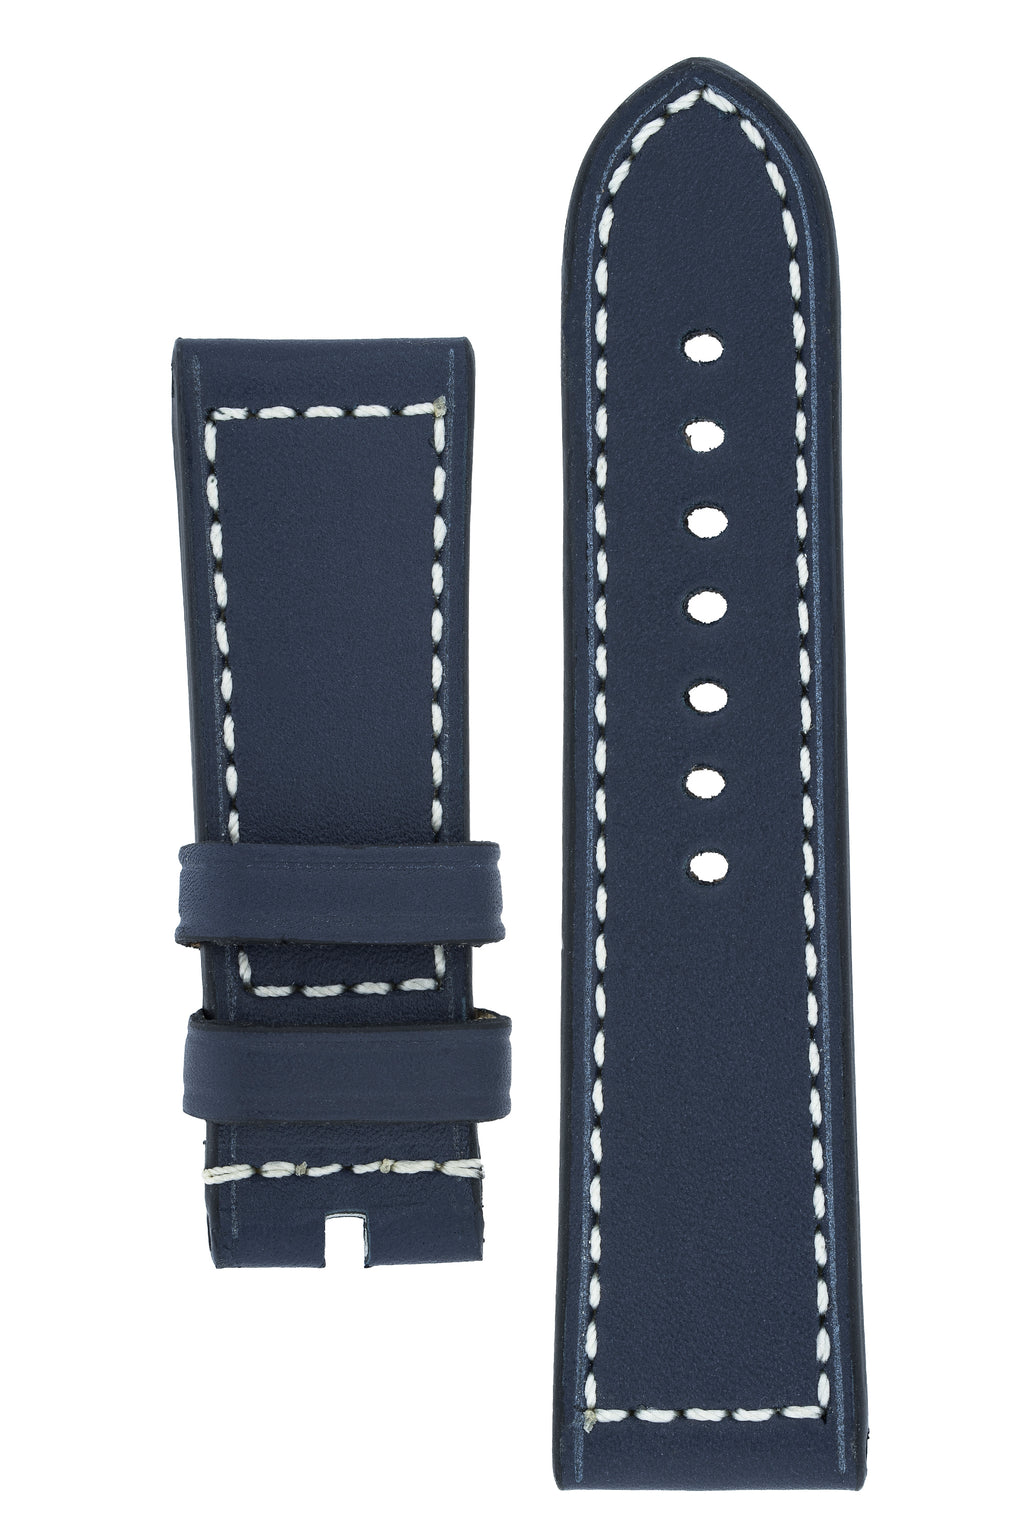 Panerai-Style Marino Leather Watch Strap in BLUE